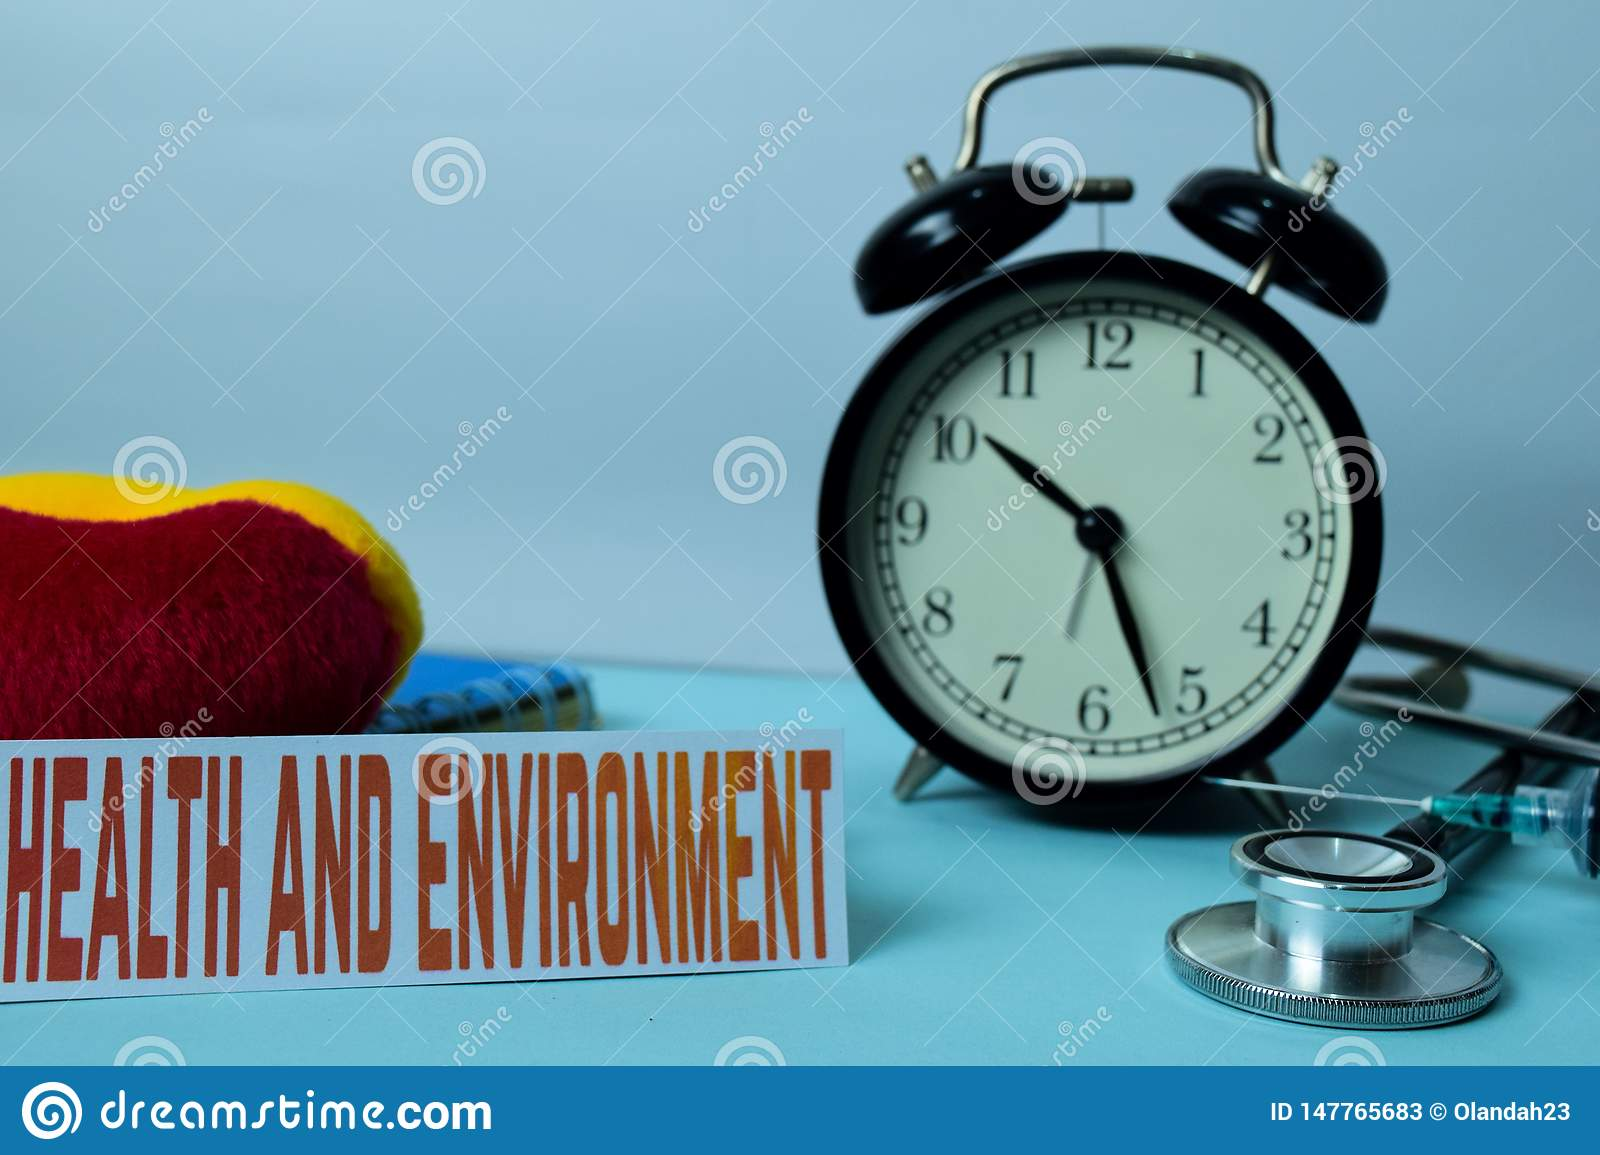 Health And Environment Planning On Background Of Working